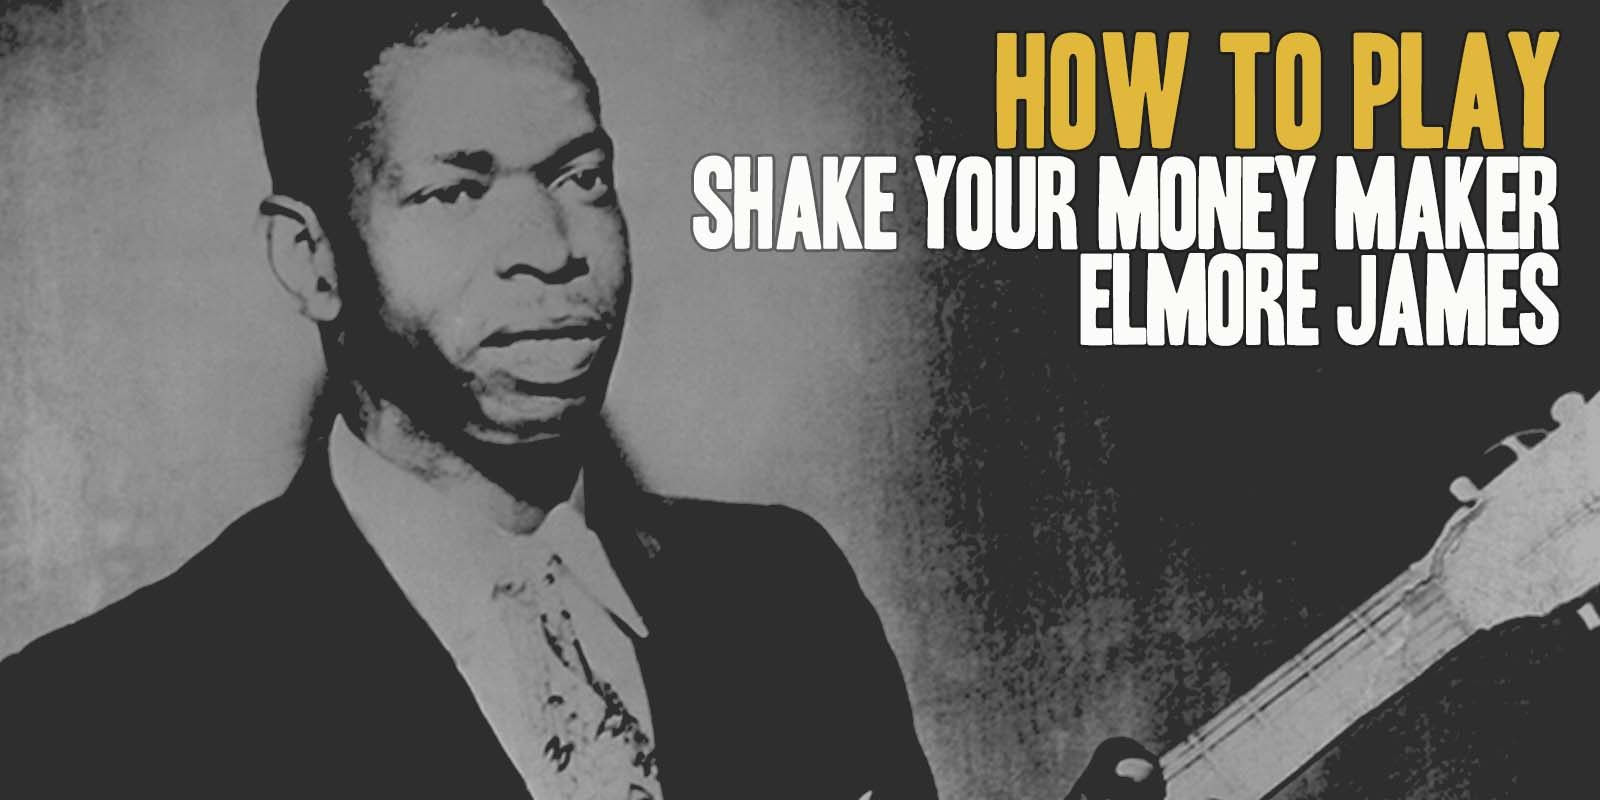 How to play Shake your Money Maker by Elmore James. A great song of Slide Blues Guitar. Music Score included in Shake your Money Maker pdf and gpx files